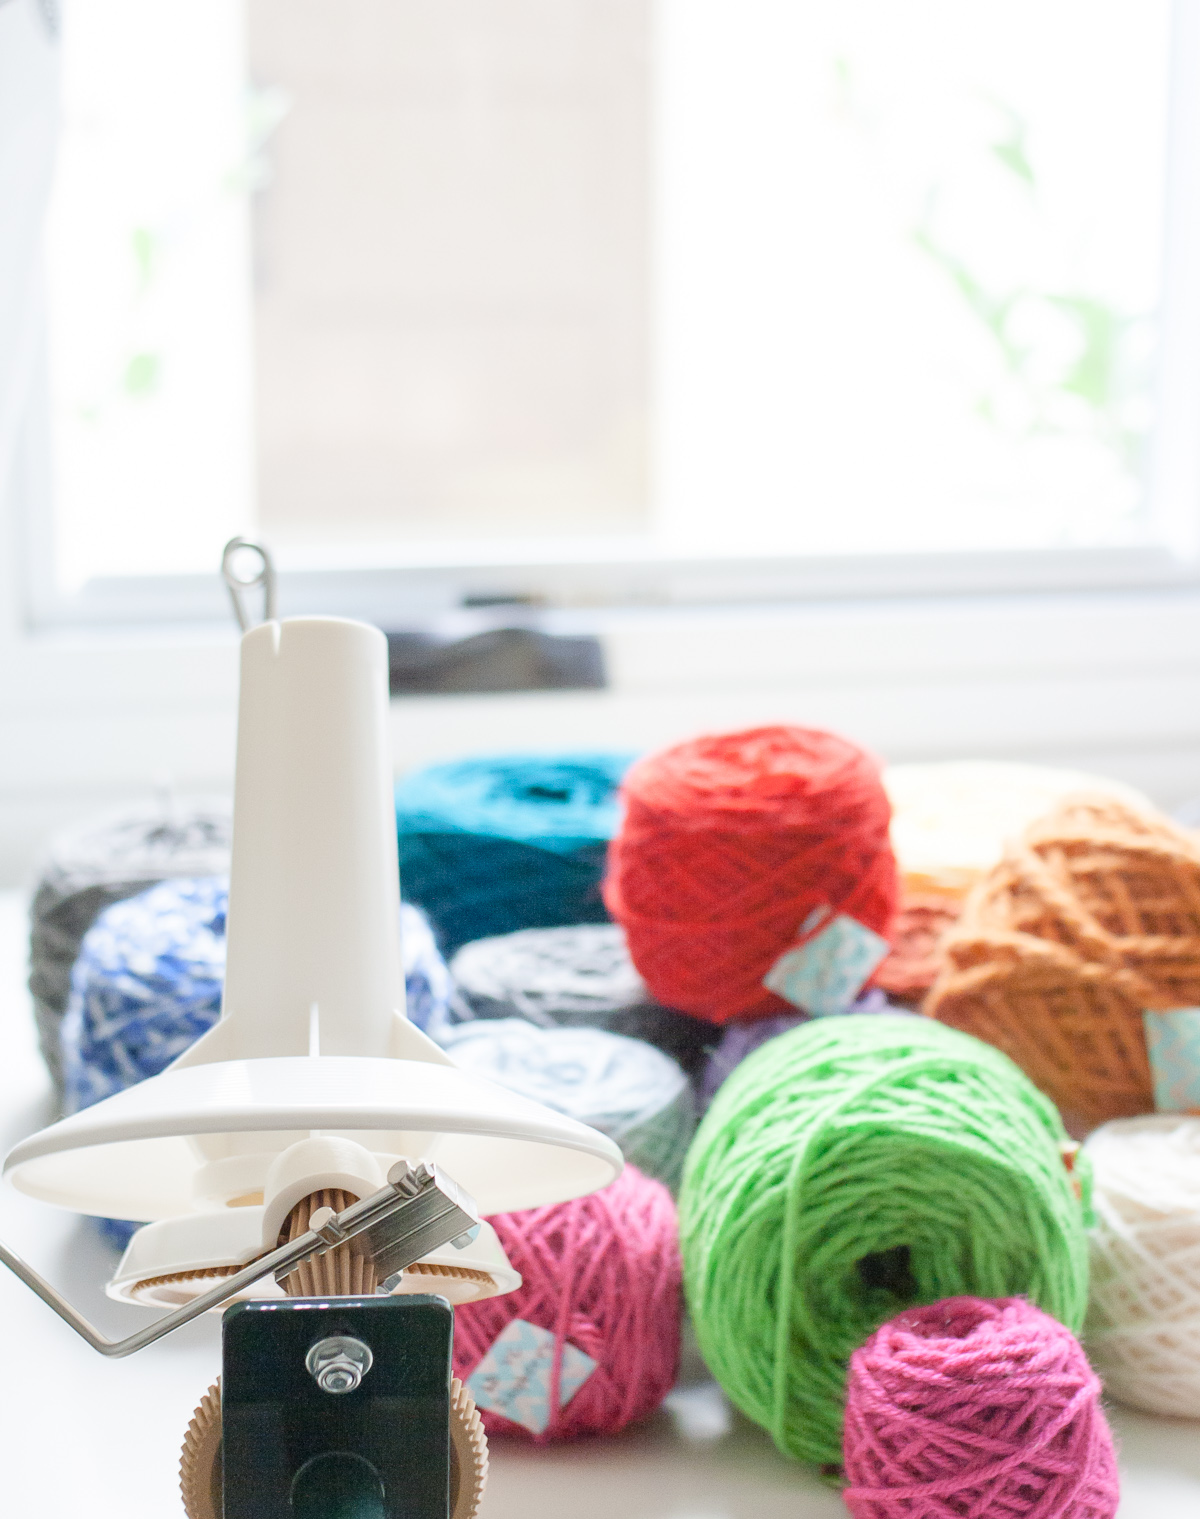 yarn winder gift idea for crocheters and knitters